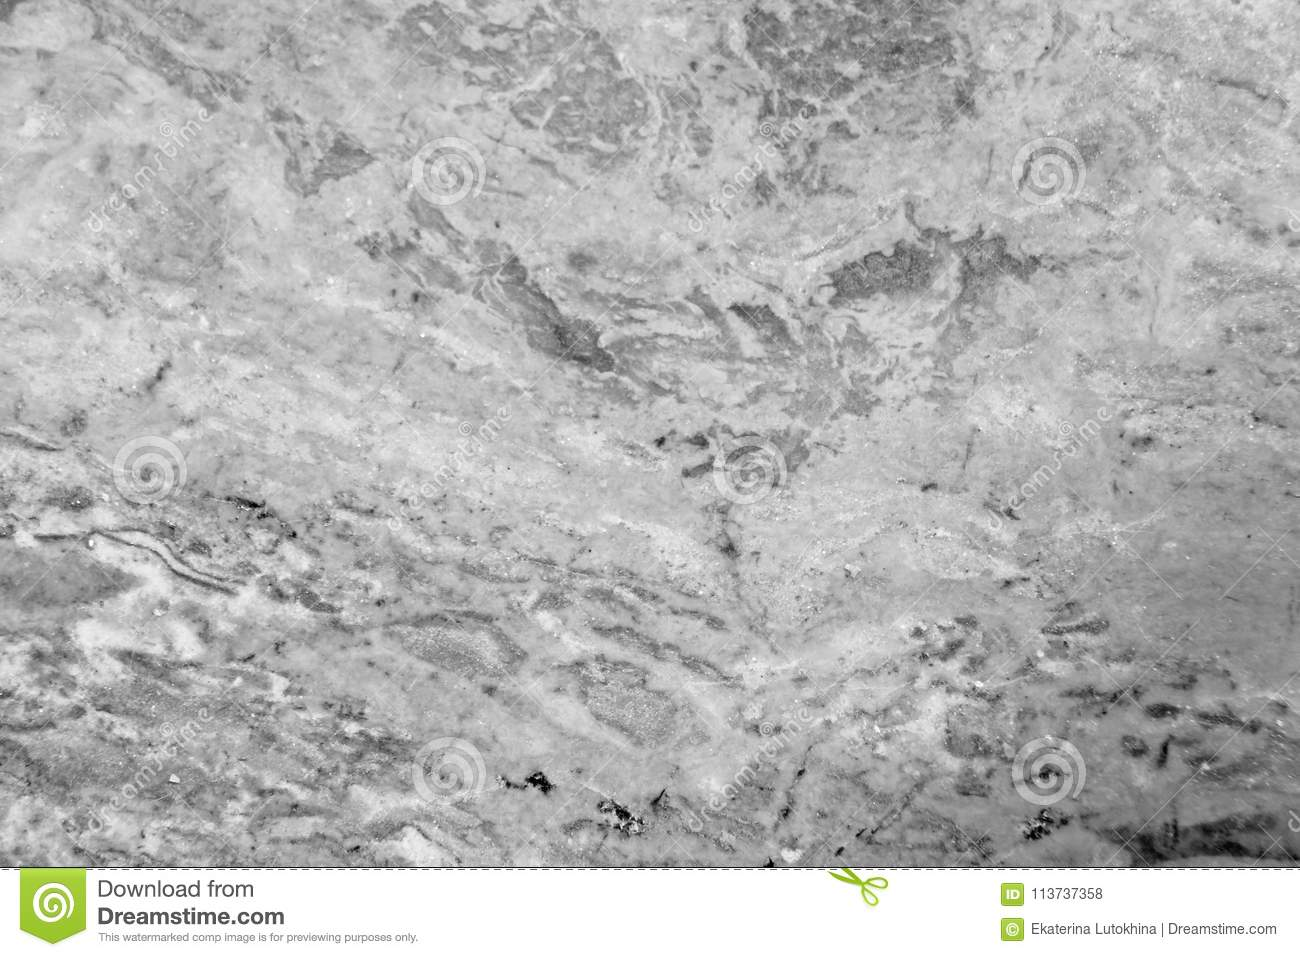 Fantastic Wallpaper Marble Background - marble-texture-background-abstract-gray-stone-wallpaper-113737358  Trends_75633.jpg